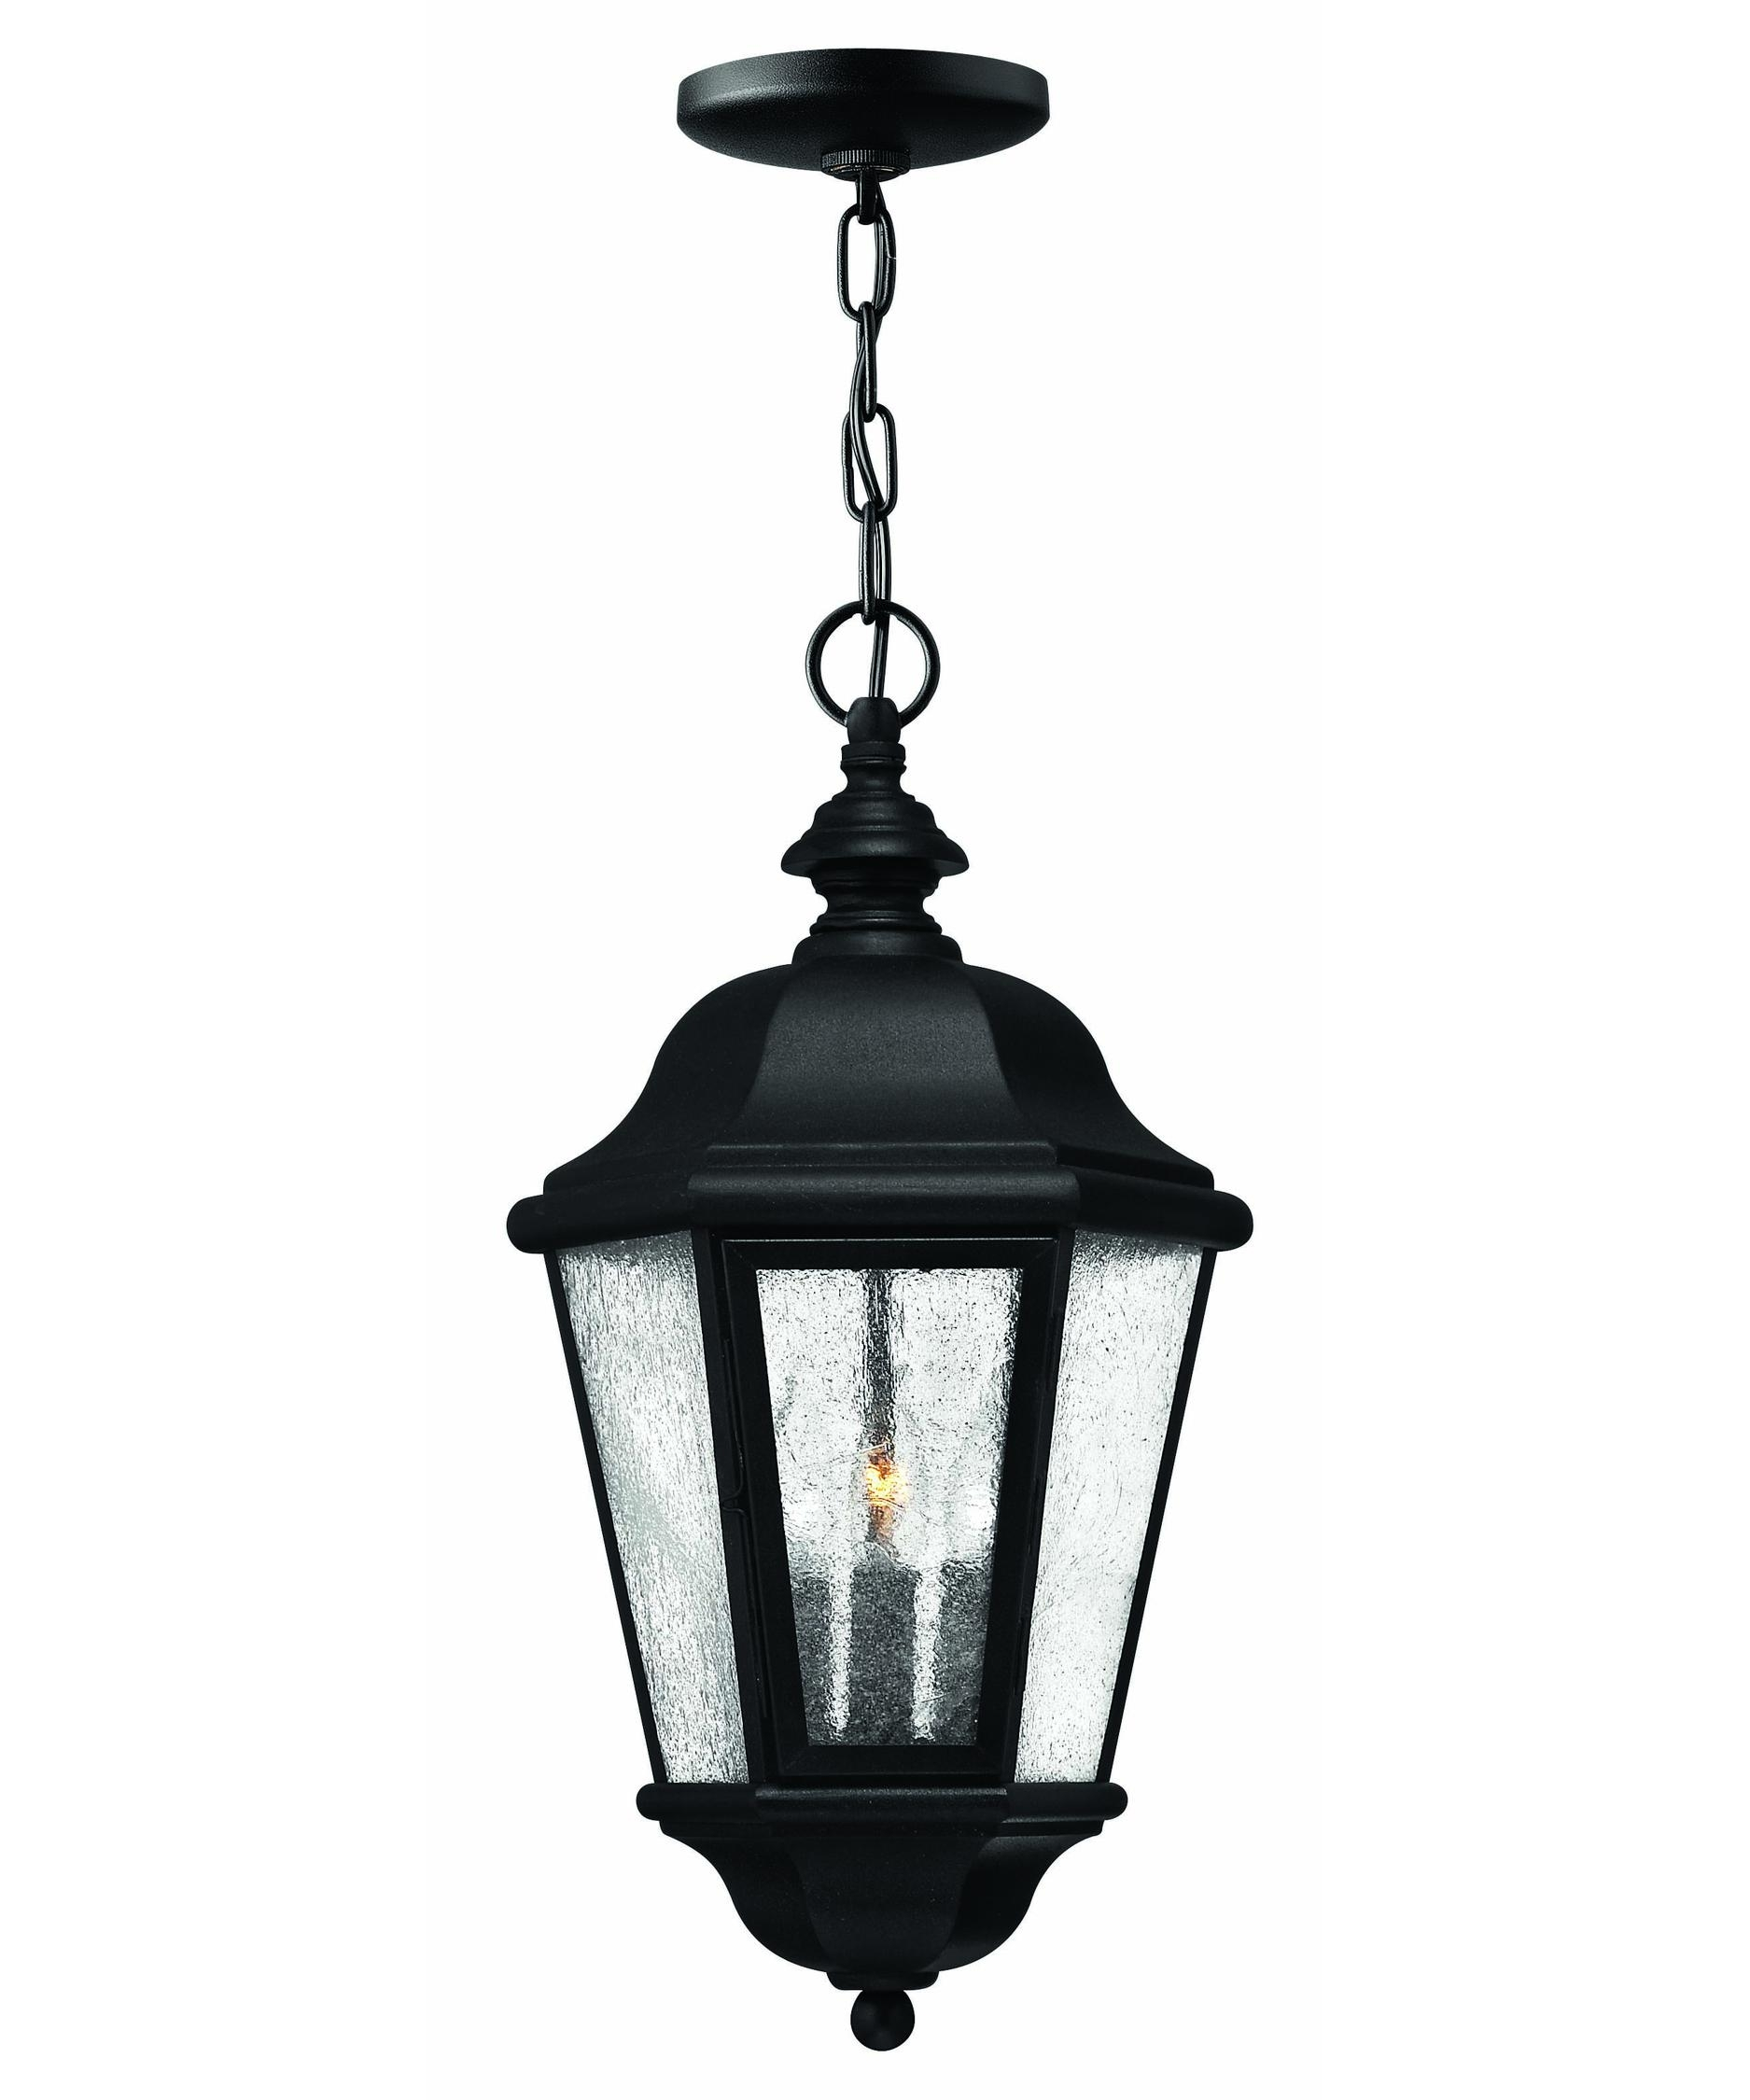 Images About Light On Pinterest Pendant Lights Lamps And ~ Idolza Throughout Outdoor Hanging Light In Black (#5 of 15)